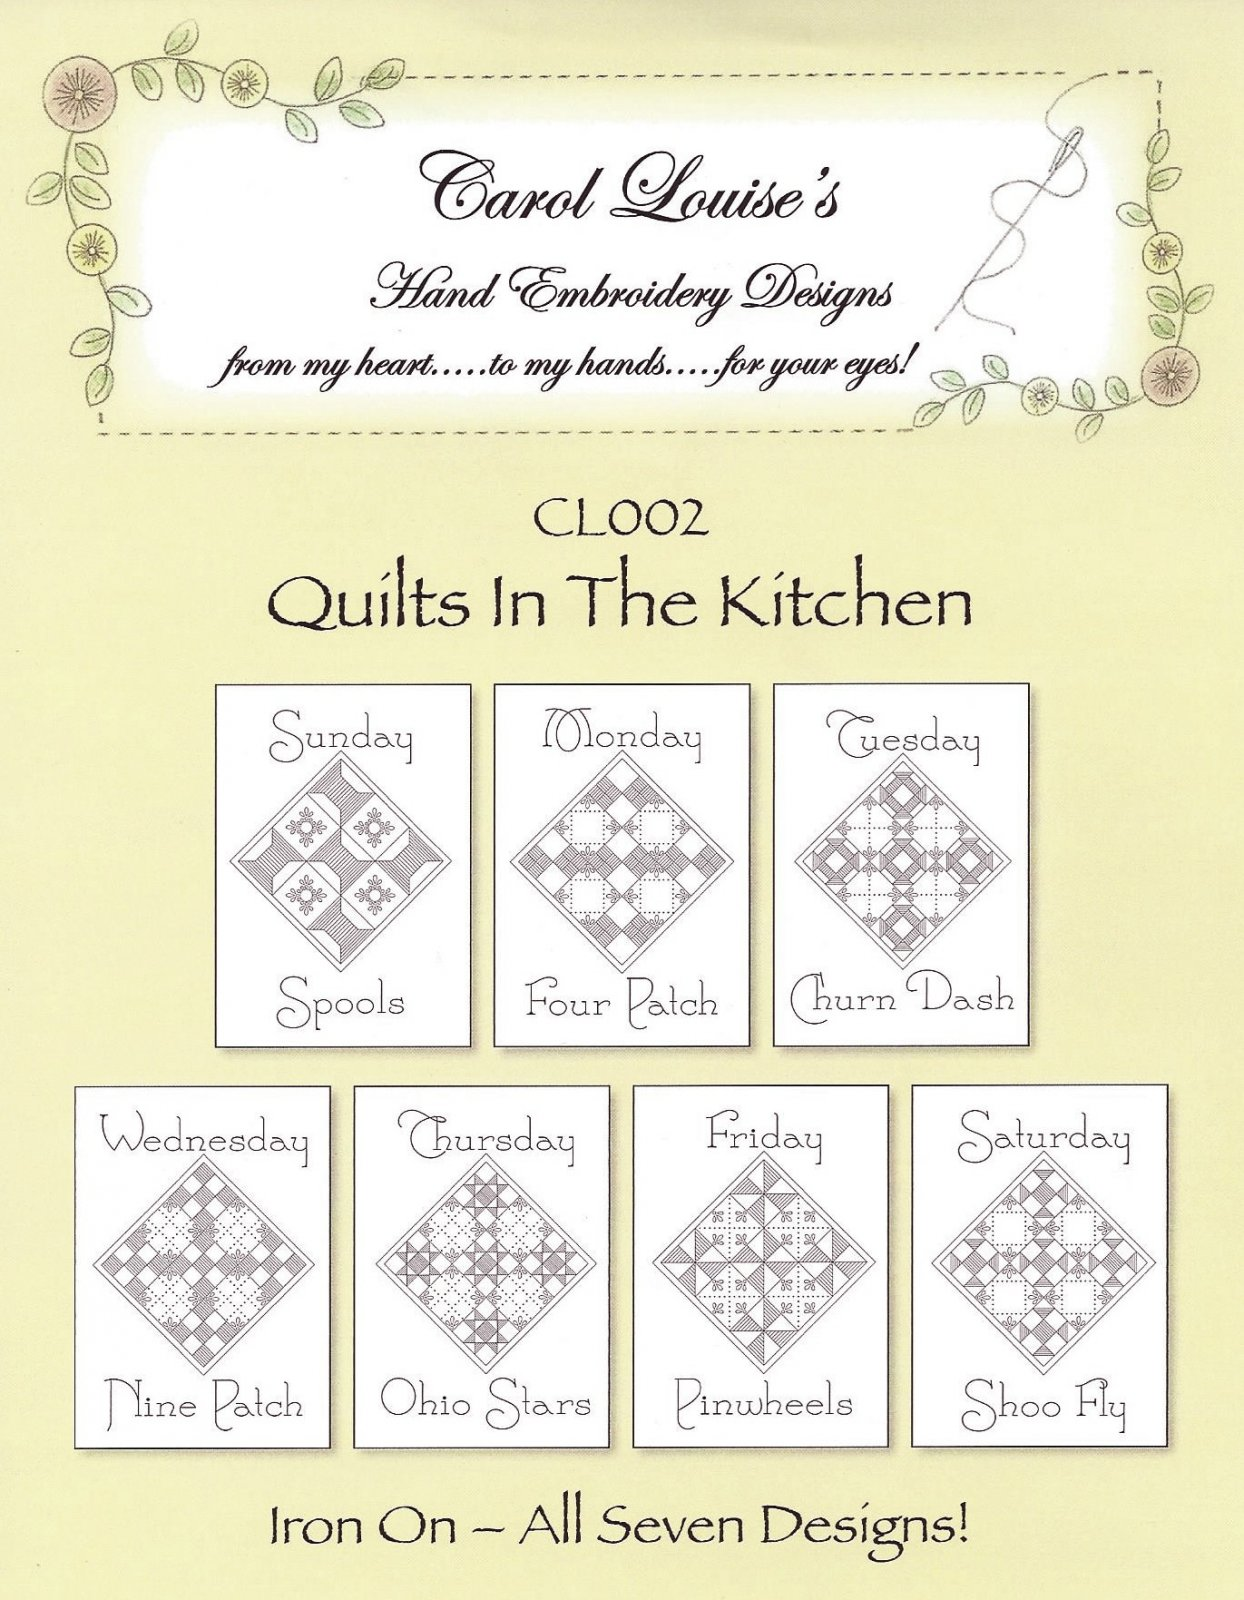 CL002 Quilts in the Kitchen